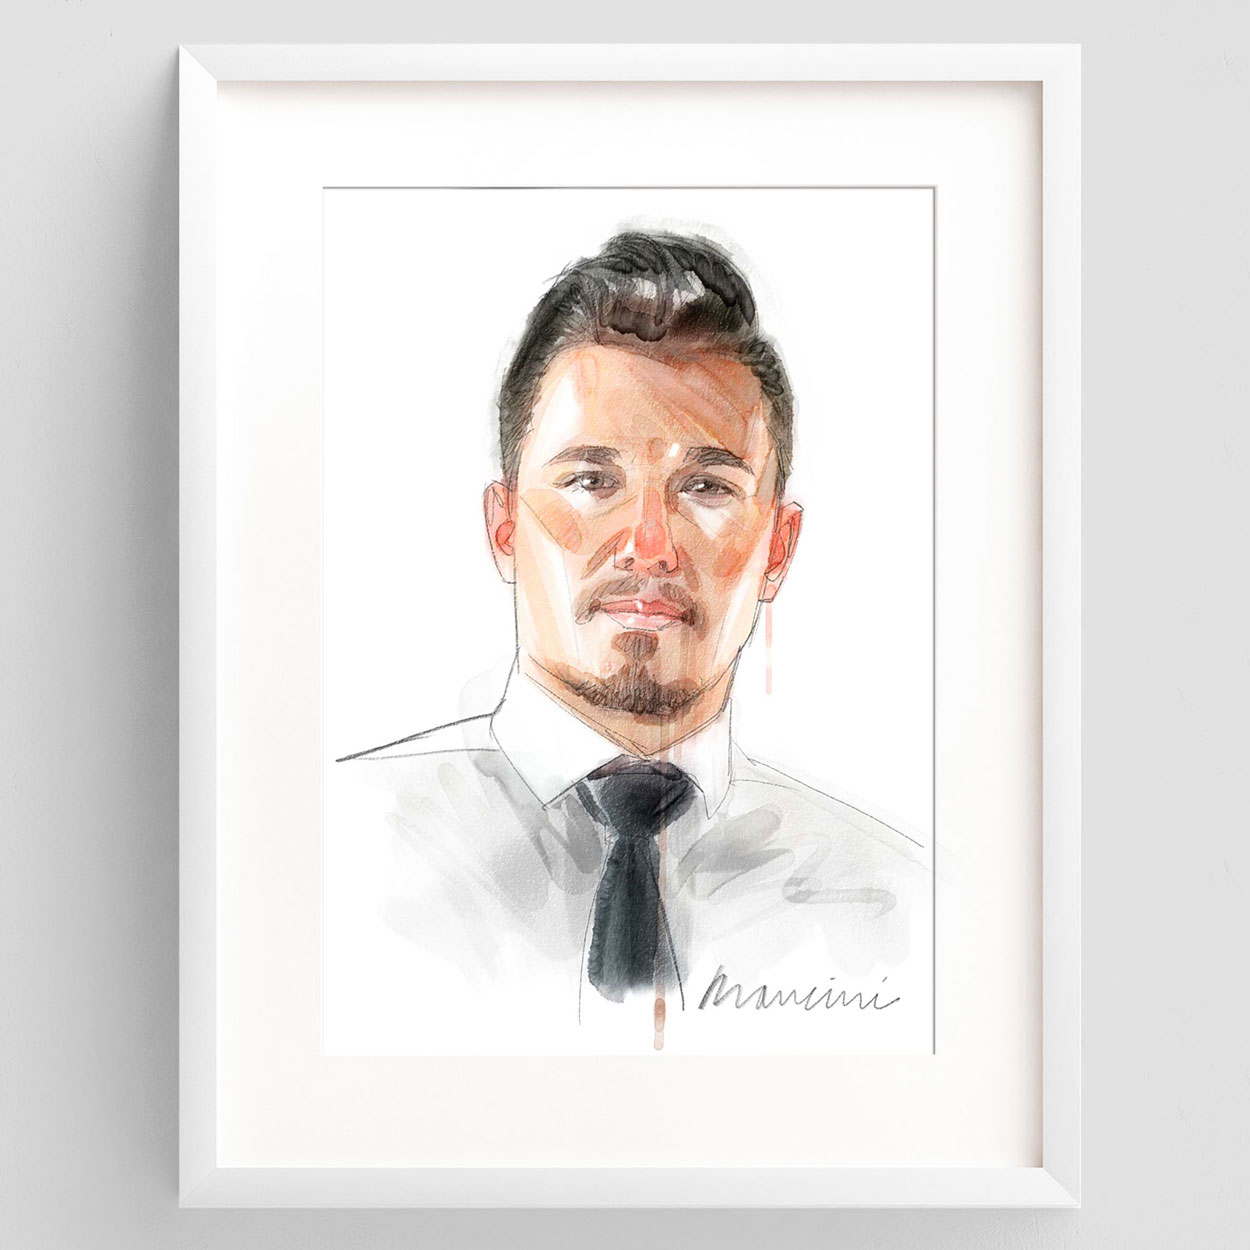 Ritratto-online-demo-framed-1